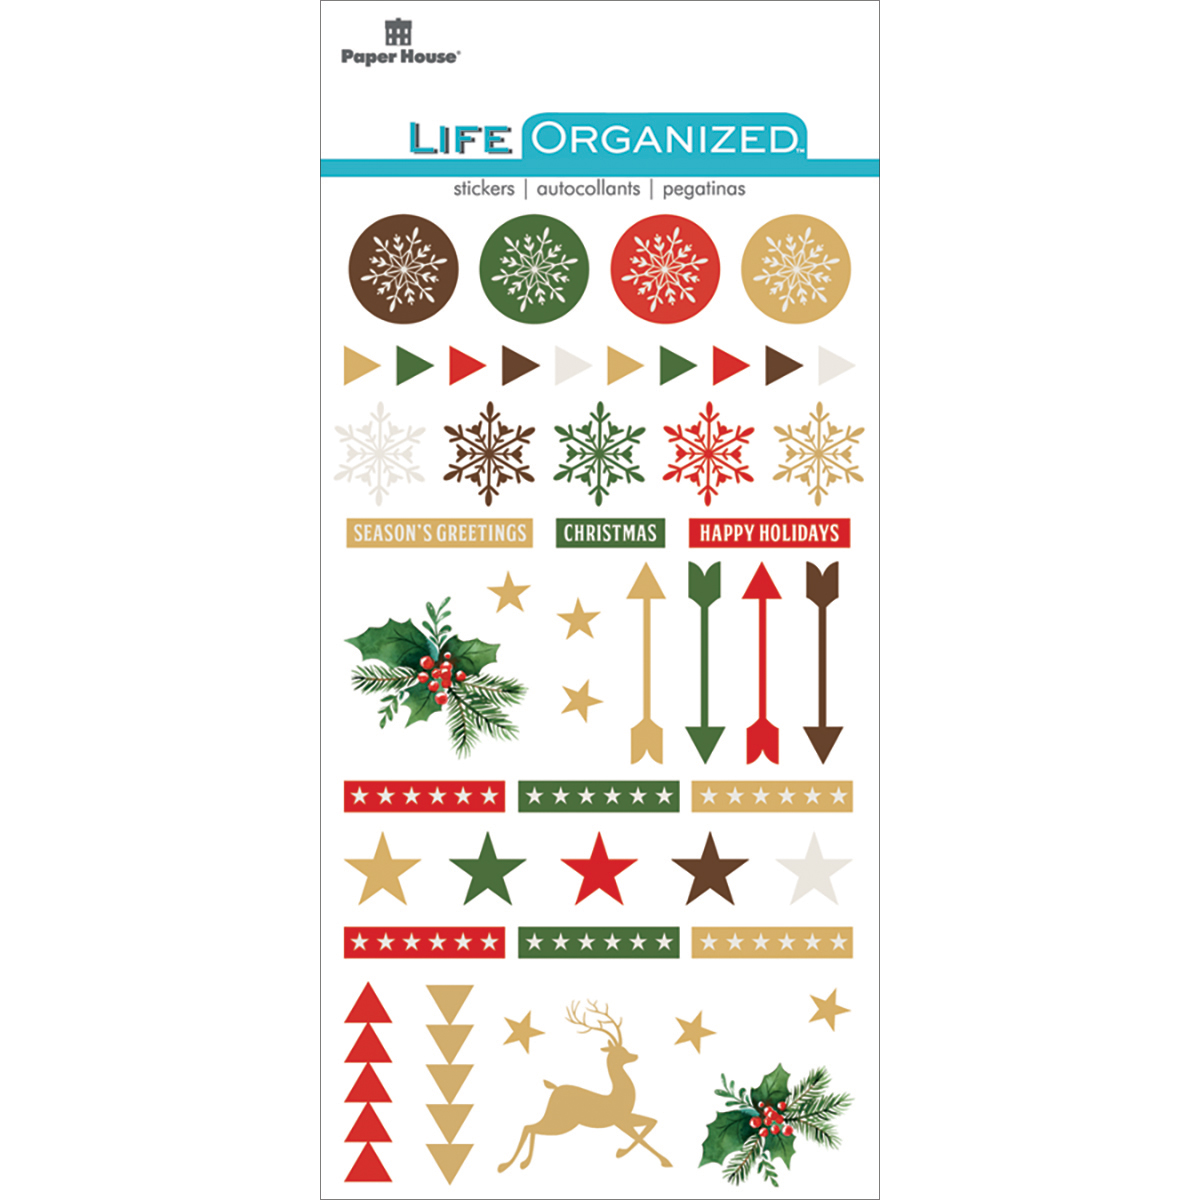 Christmas - Paper House Life Organized Epoxy Stickers 6.5